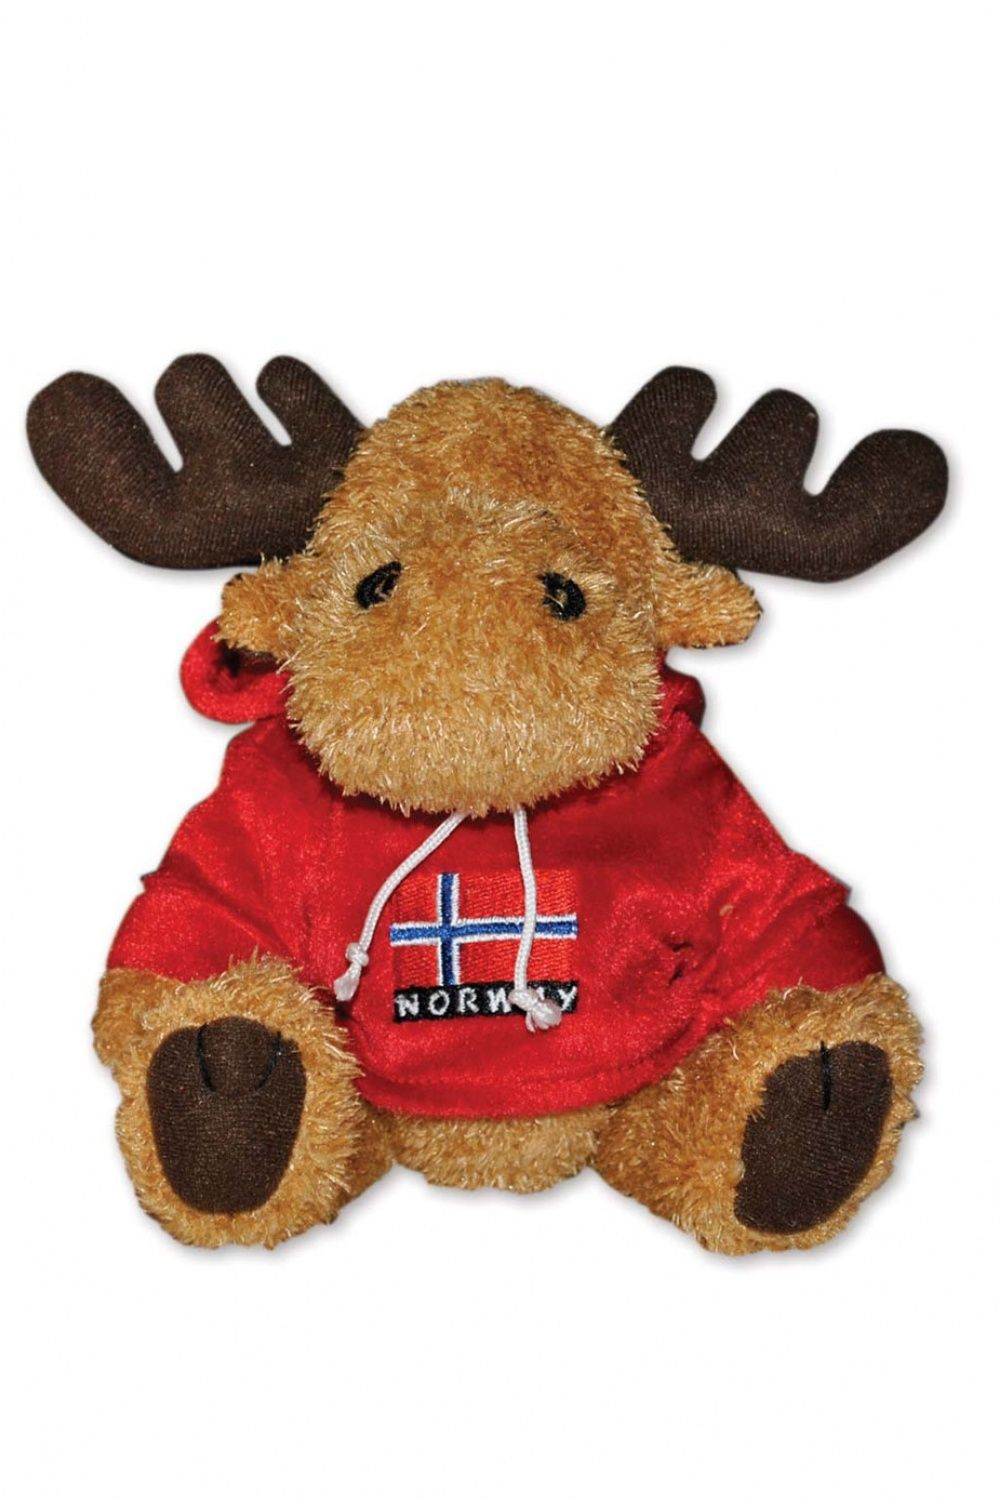 Plush Moose With Red Hoodie - Way Nor - Toys & Games